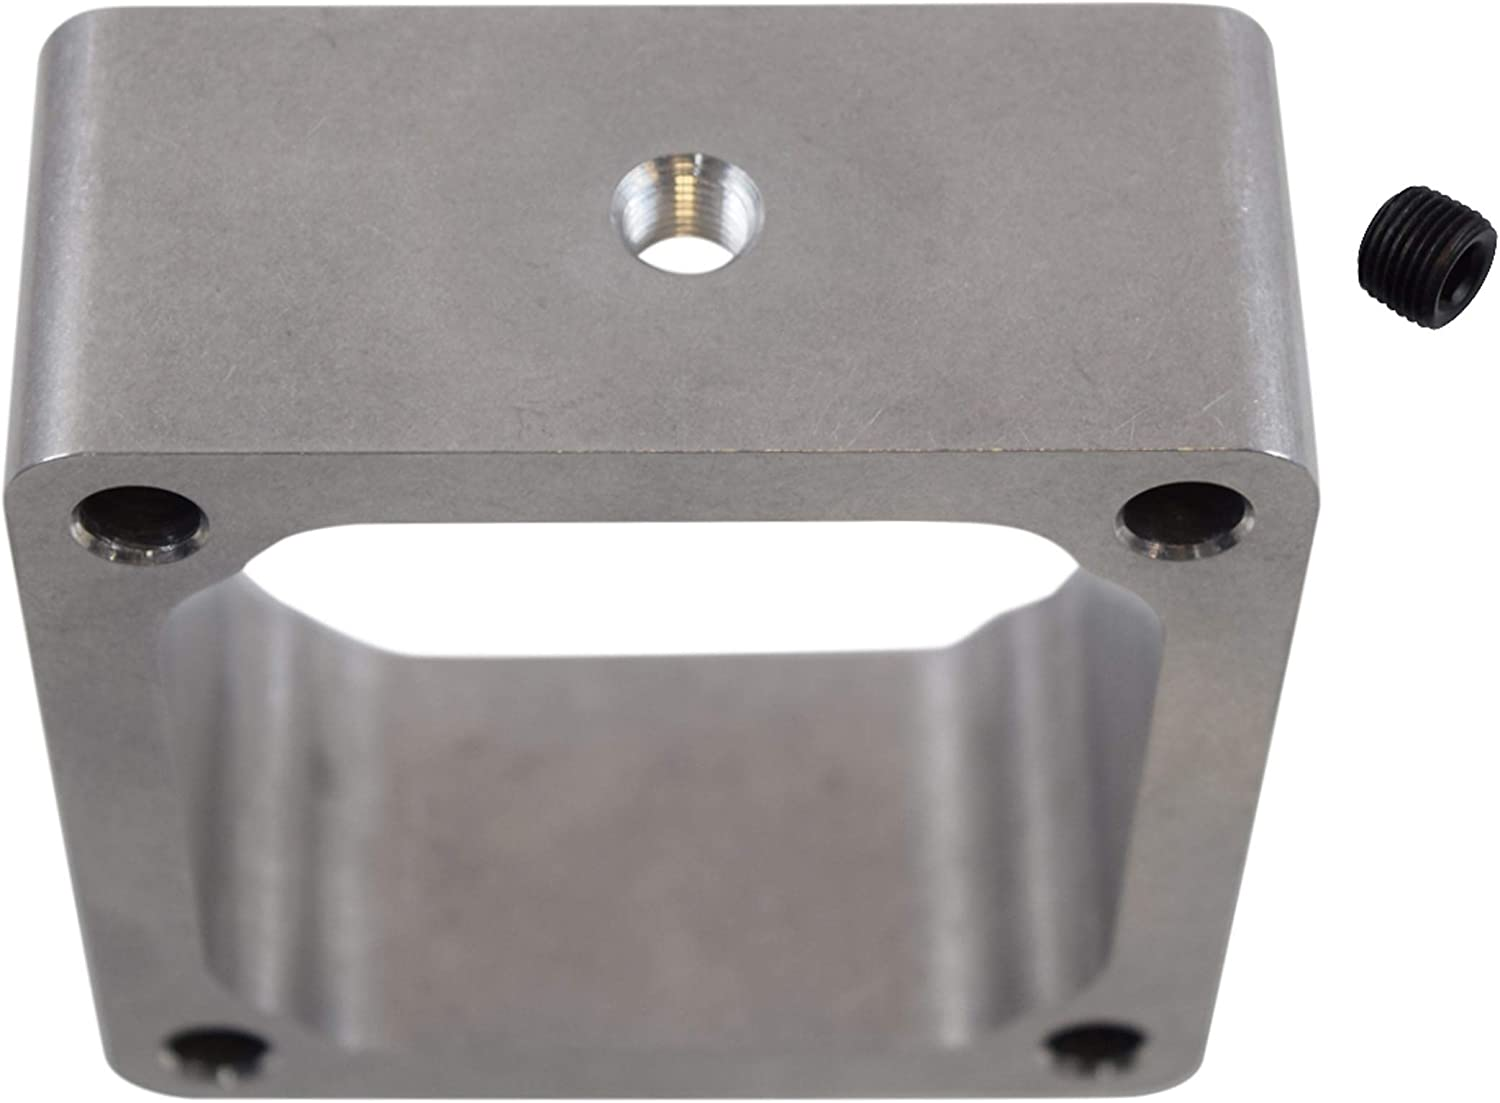 ICT Billet Grid Heater Spacer Replacement Compatible With 89-07 Dodge Cummins 6BT 5.9L Designed /& Manufactured in the USA Improve Airflow Faster Turbo Spool 551662